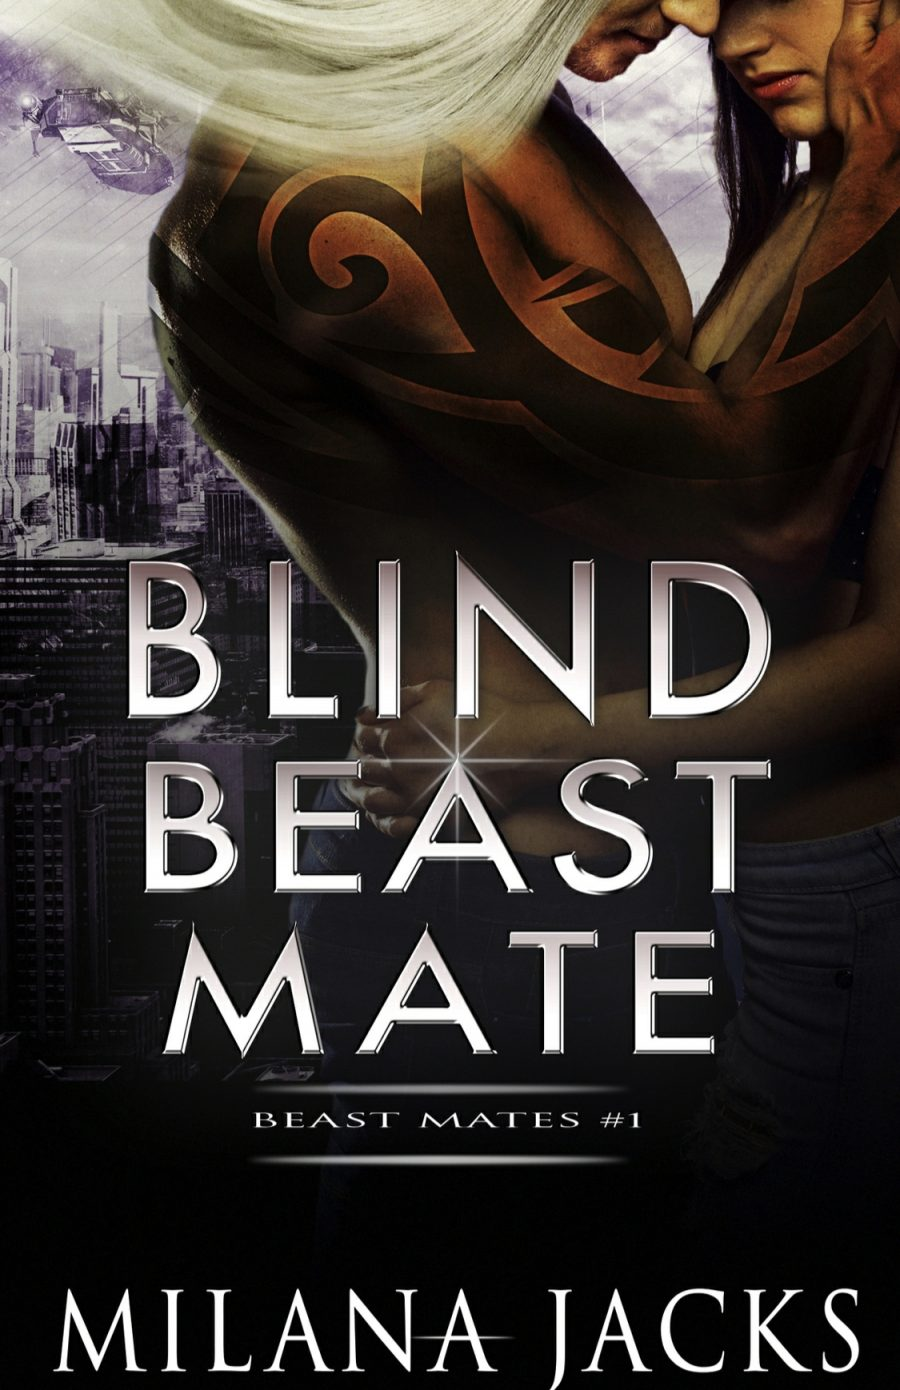 Blind Beast Mate by Milana Jacks - A Book Review #BookReview #Review #PNR #Dystopian #FatedMates #Alien #Novella #3StarRead #KindleUnlimited #KU